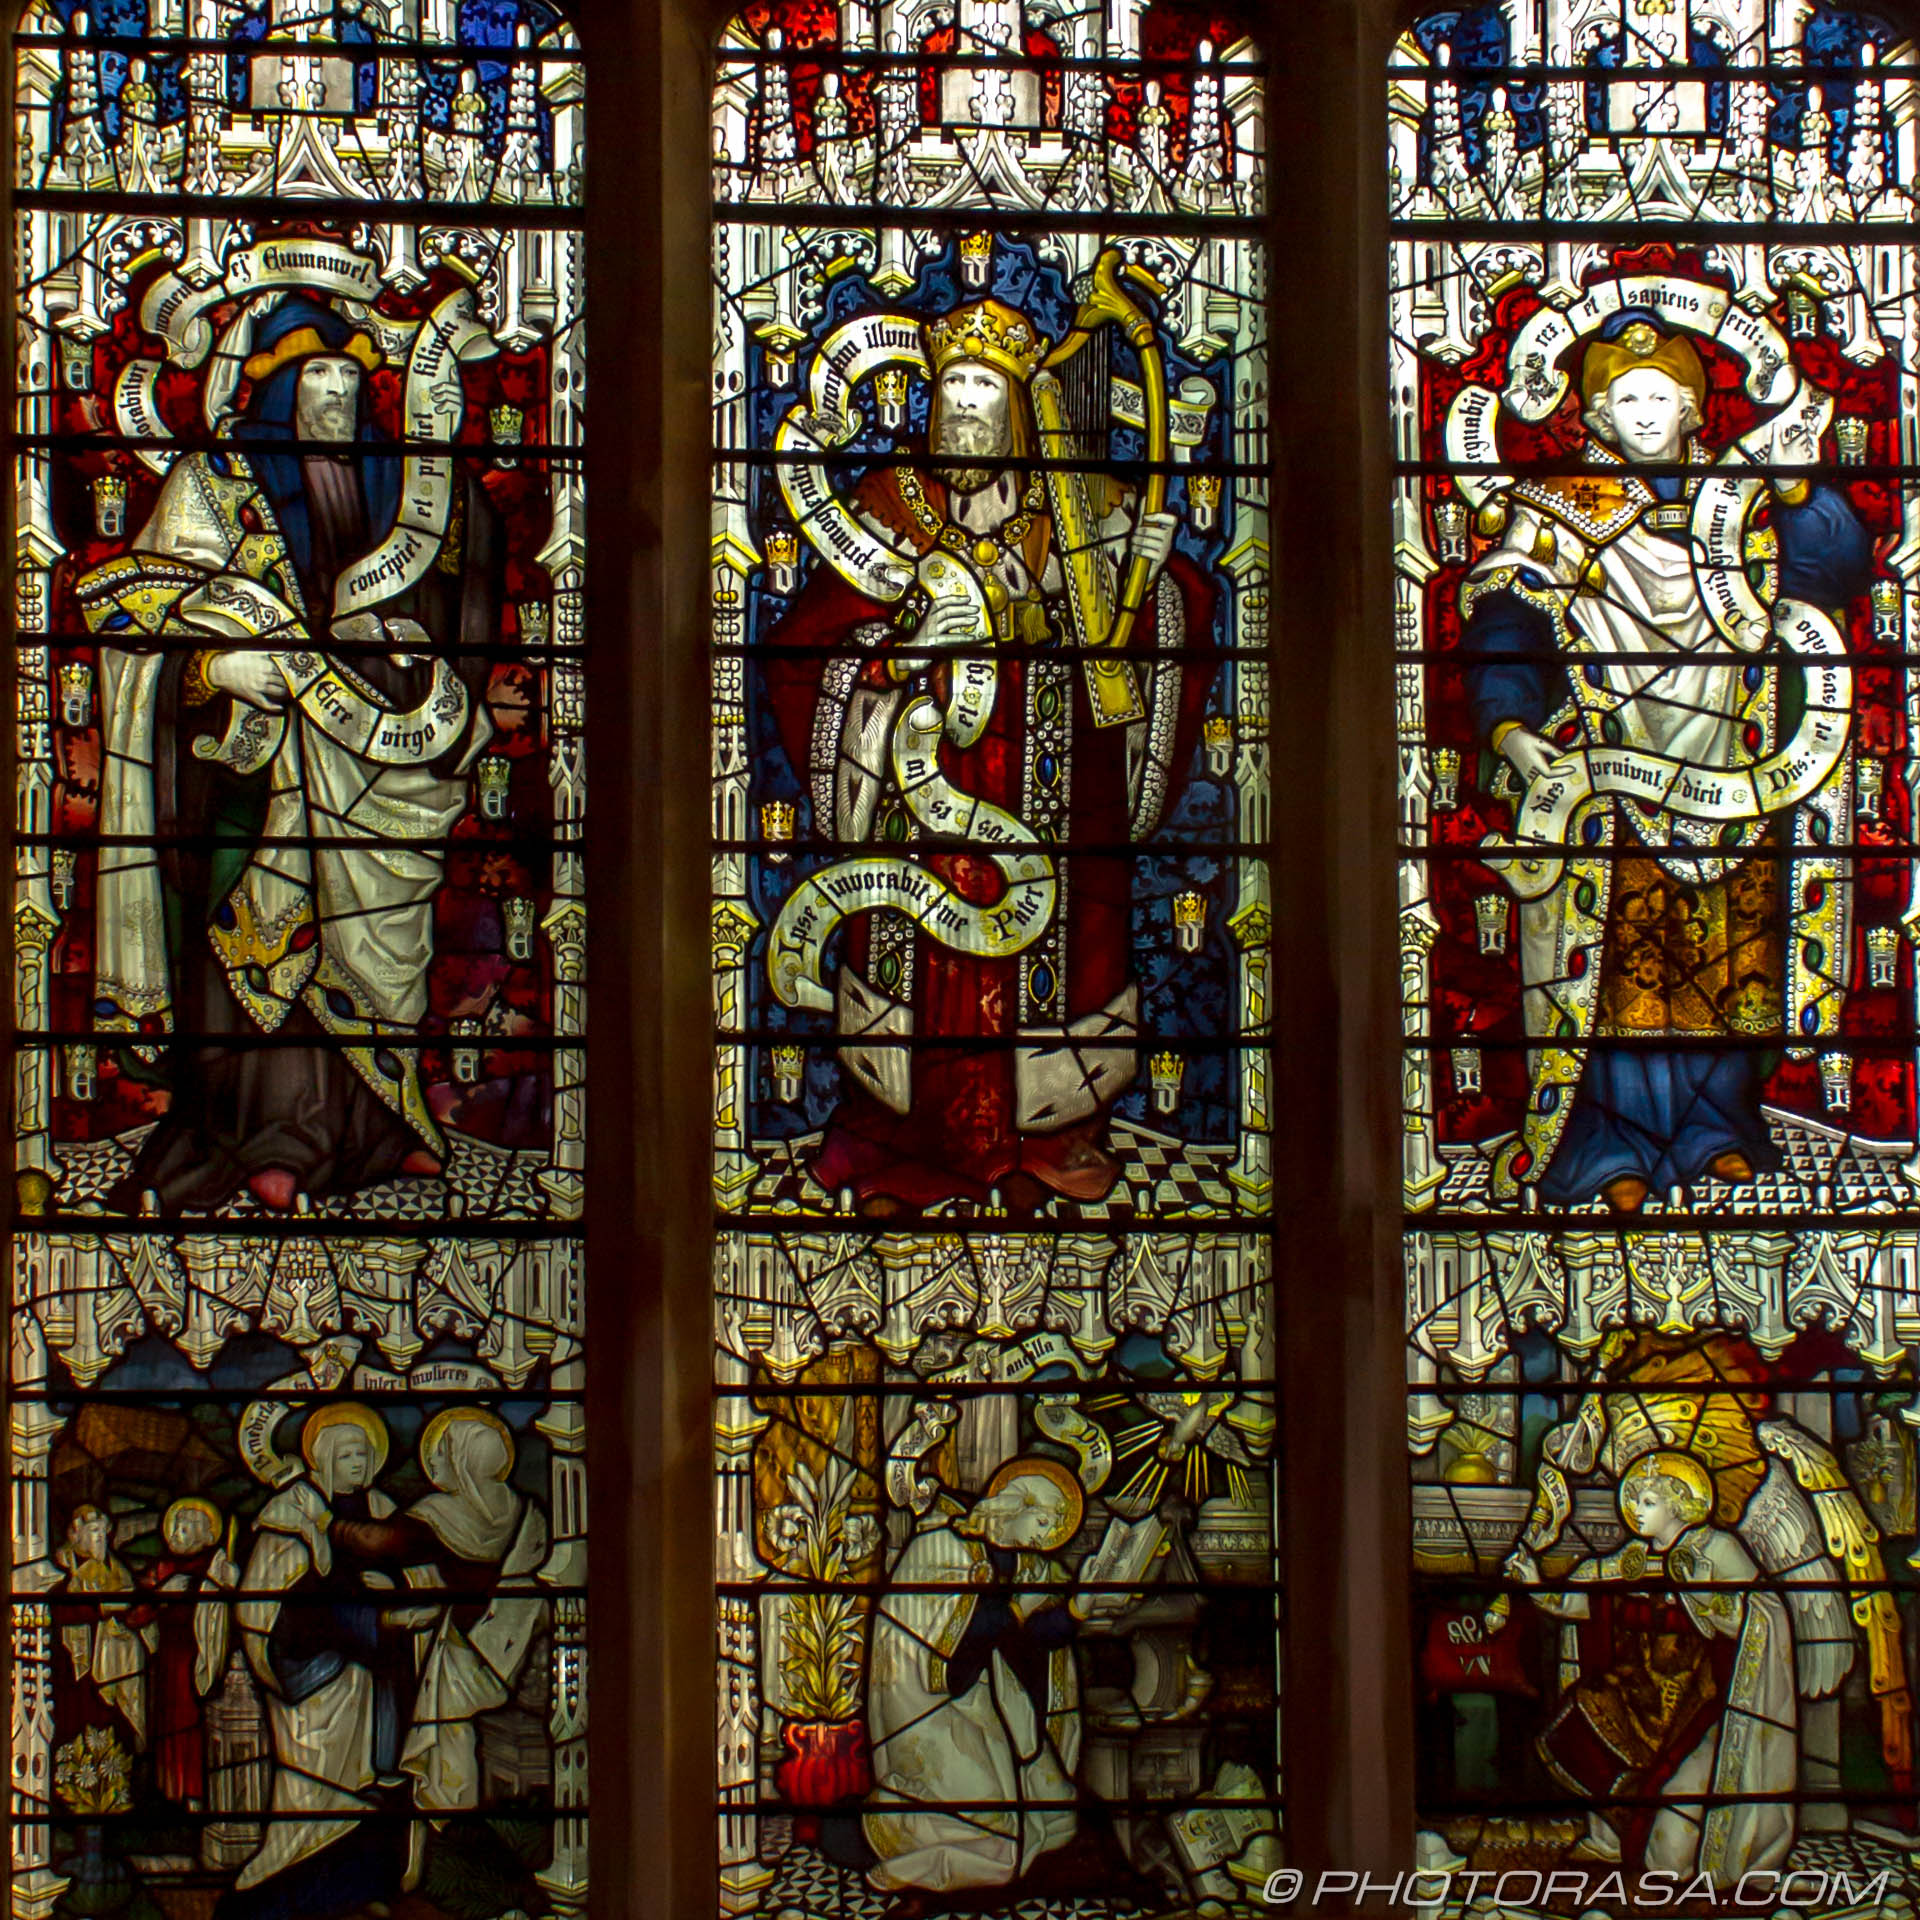 http://photorasa.com/st-dunstans-church-cranbrook/stained-glass-of-three-kings-in-heaven-and-holy-scribes/